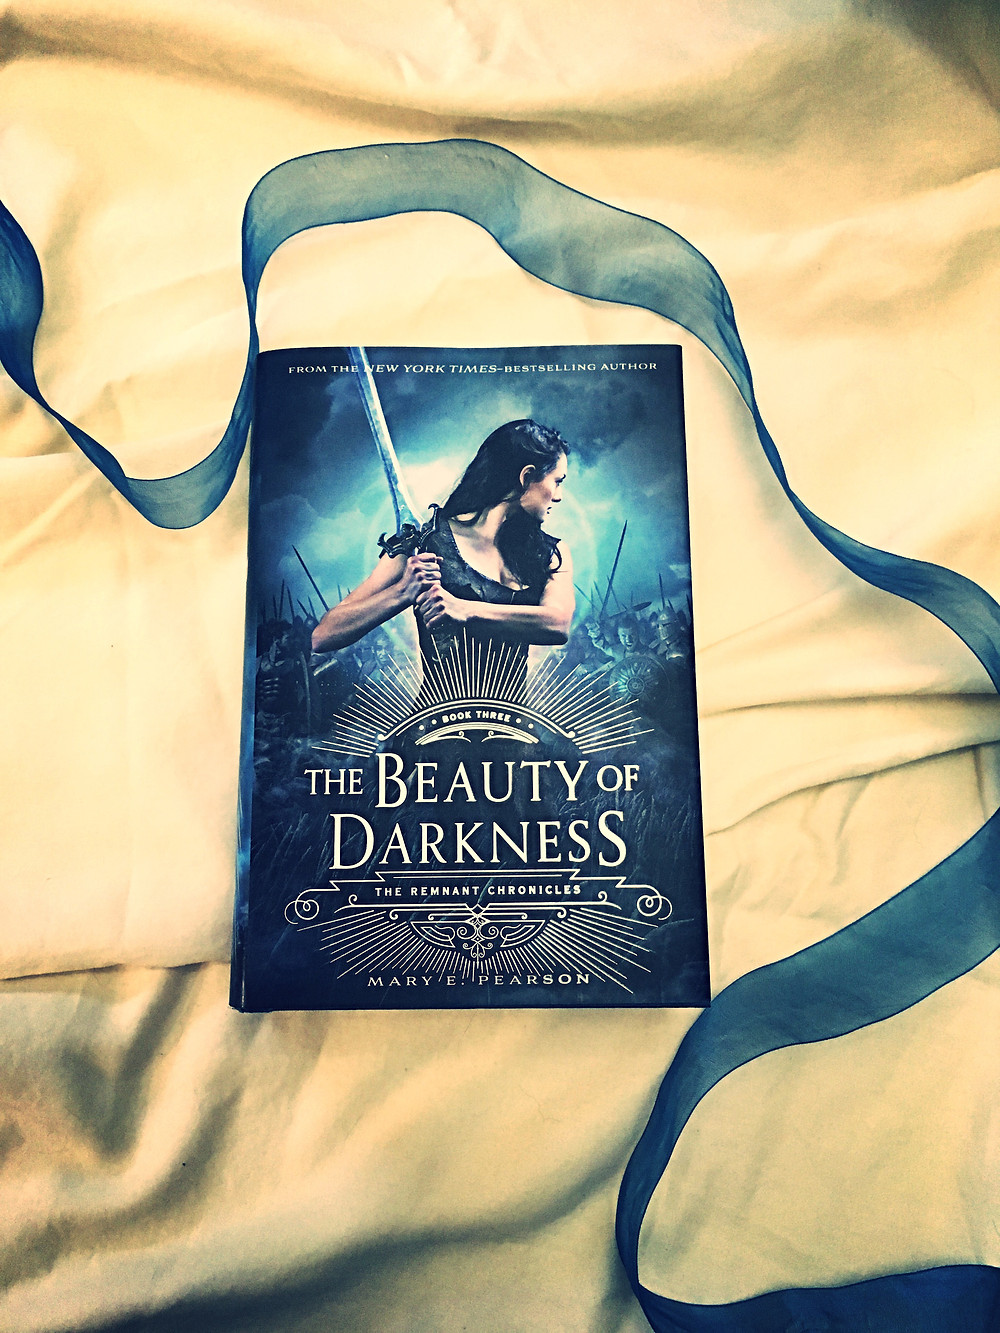 Photo of: The Beauty of Darkness book on a cream background, with a blue ribbon arranged around the book.